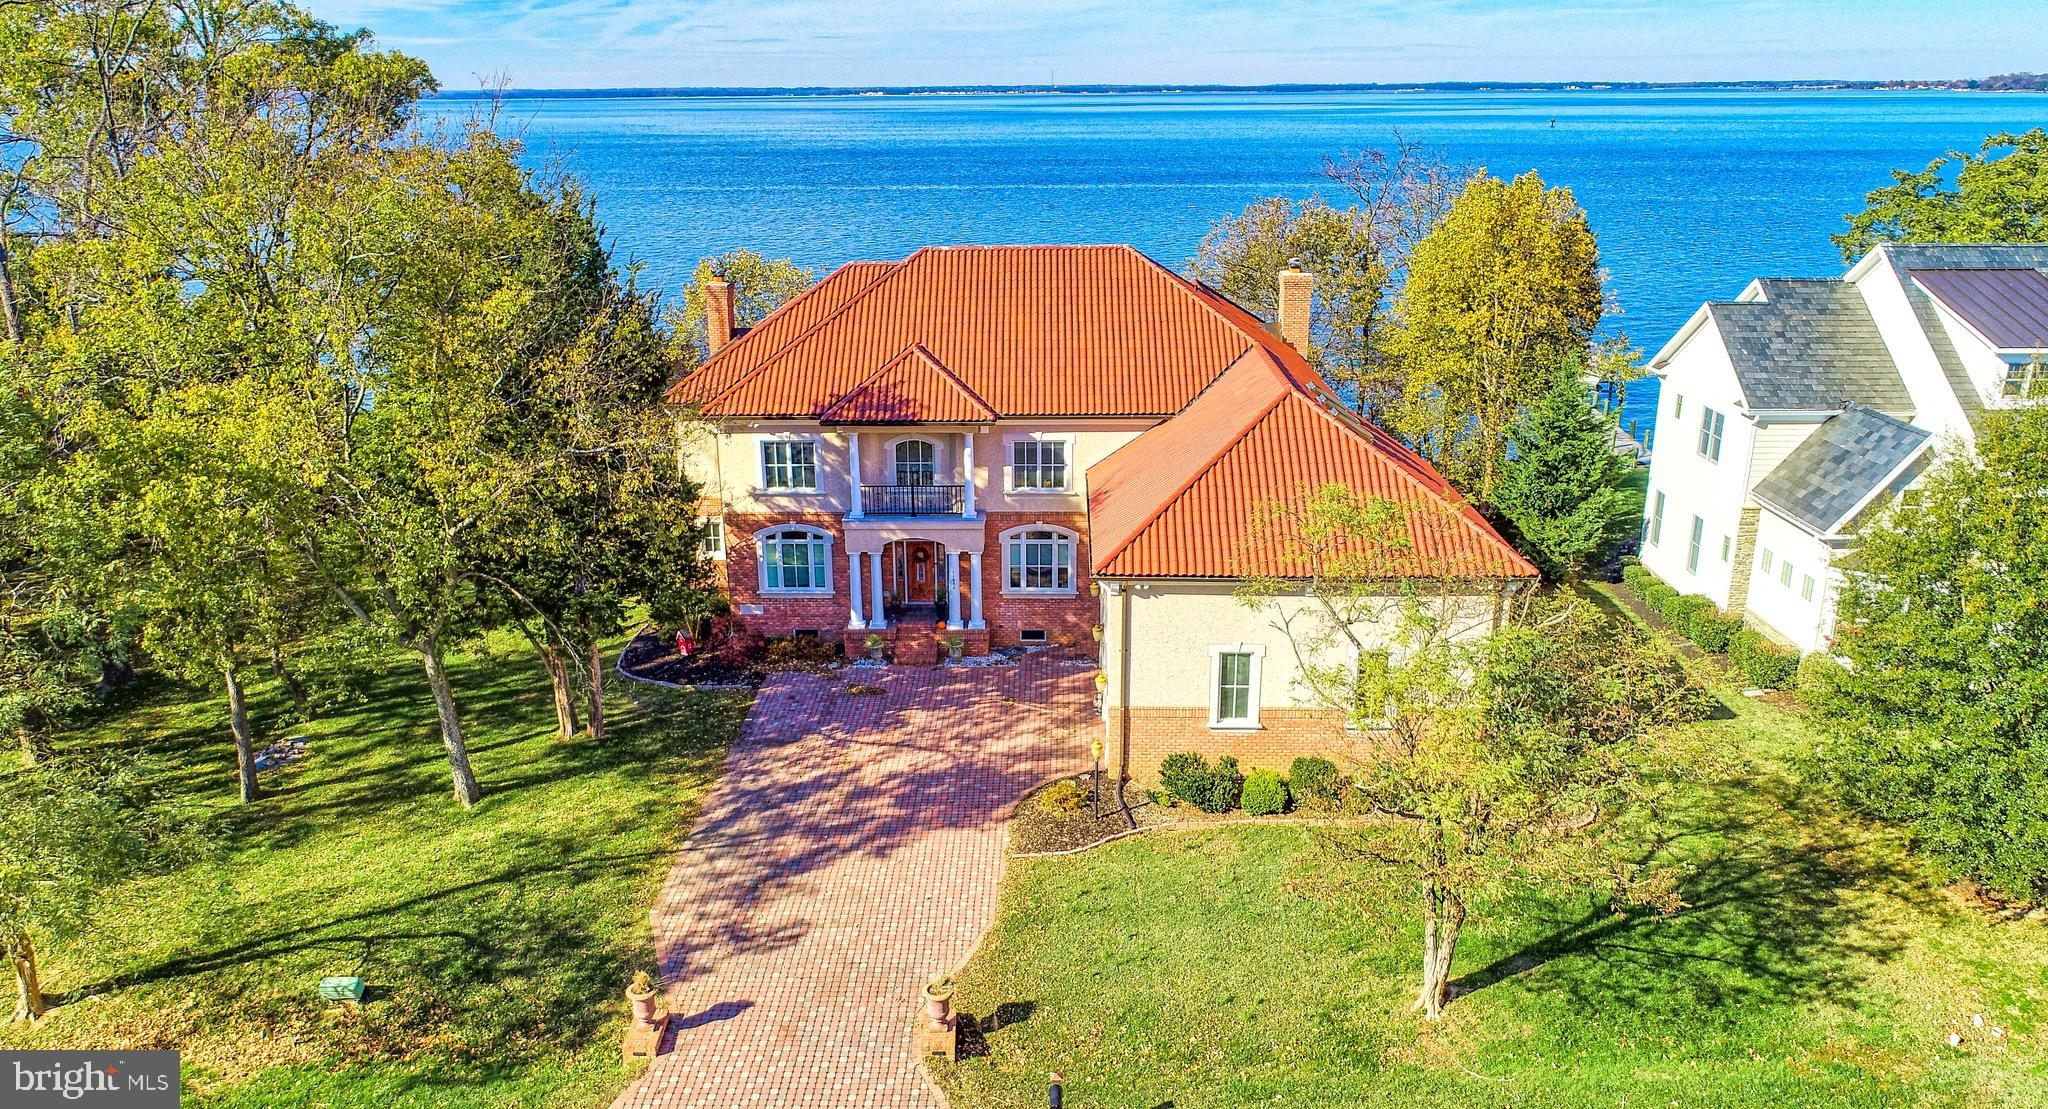 11650 BACHELORS HOPE COURT, SWAN POINT, MD 20645